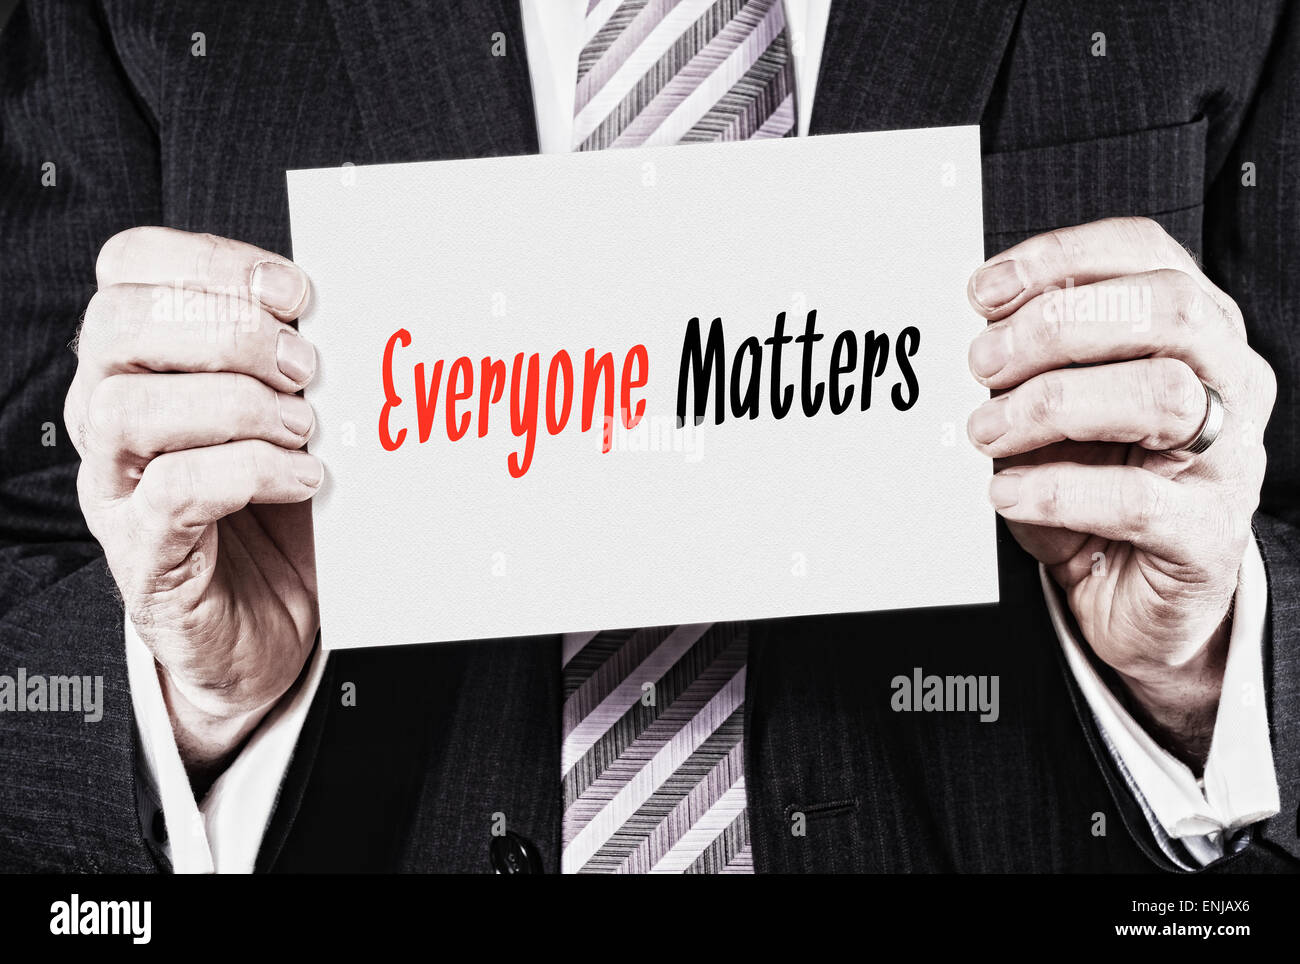 A businessman holding a card with the words, Everyone Matters written on it. - Stock Image